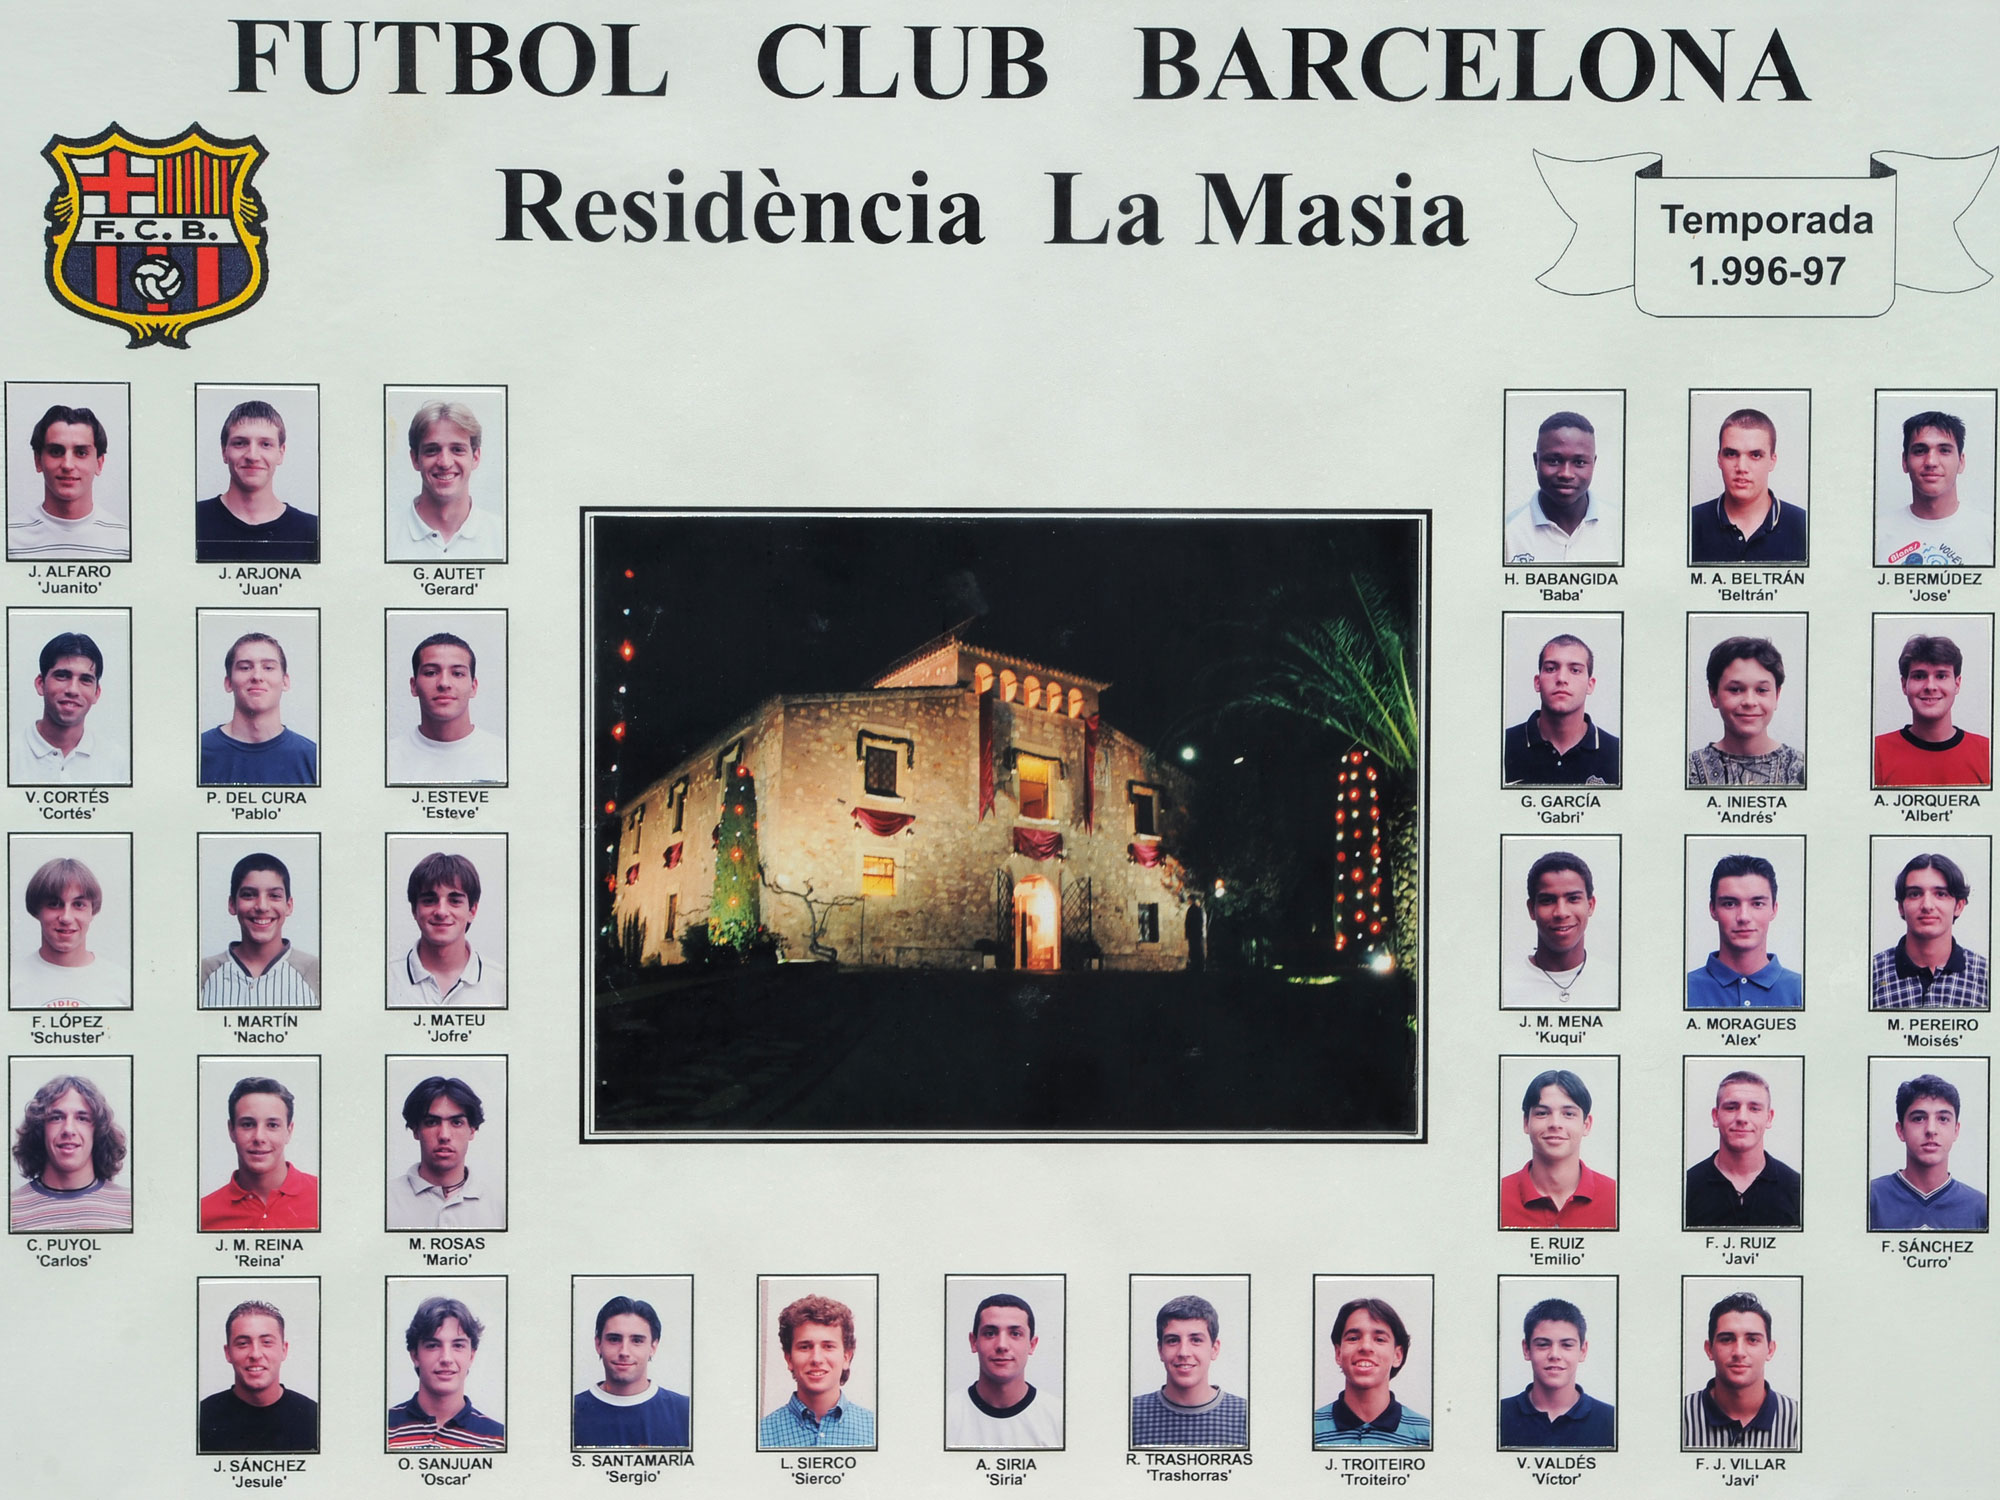 Andres Iniesta and Carles Puyol came through Barcelona's famed La Masia academy